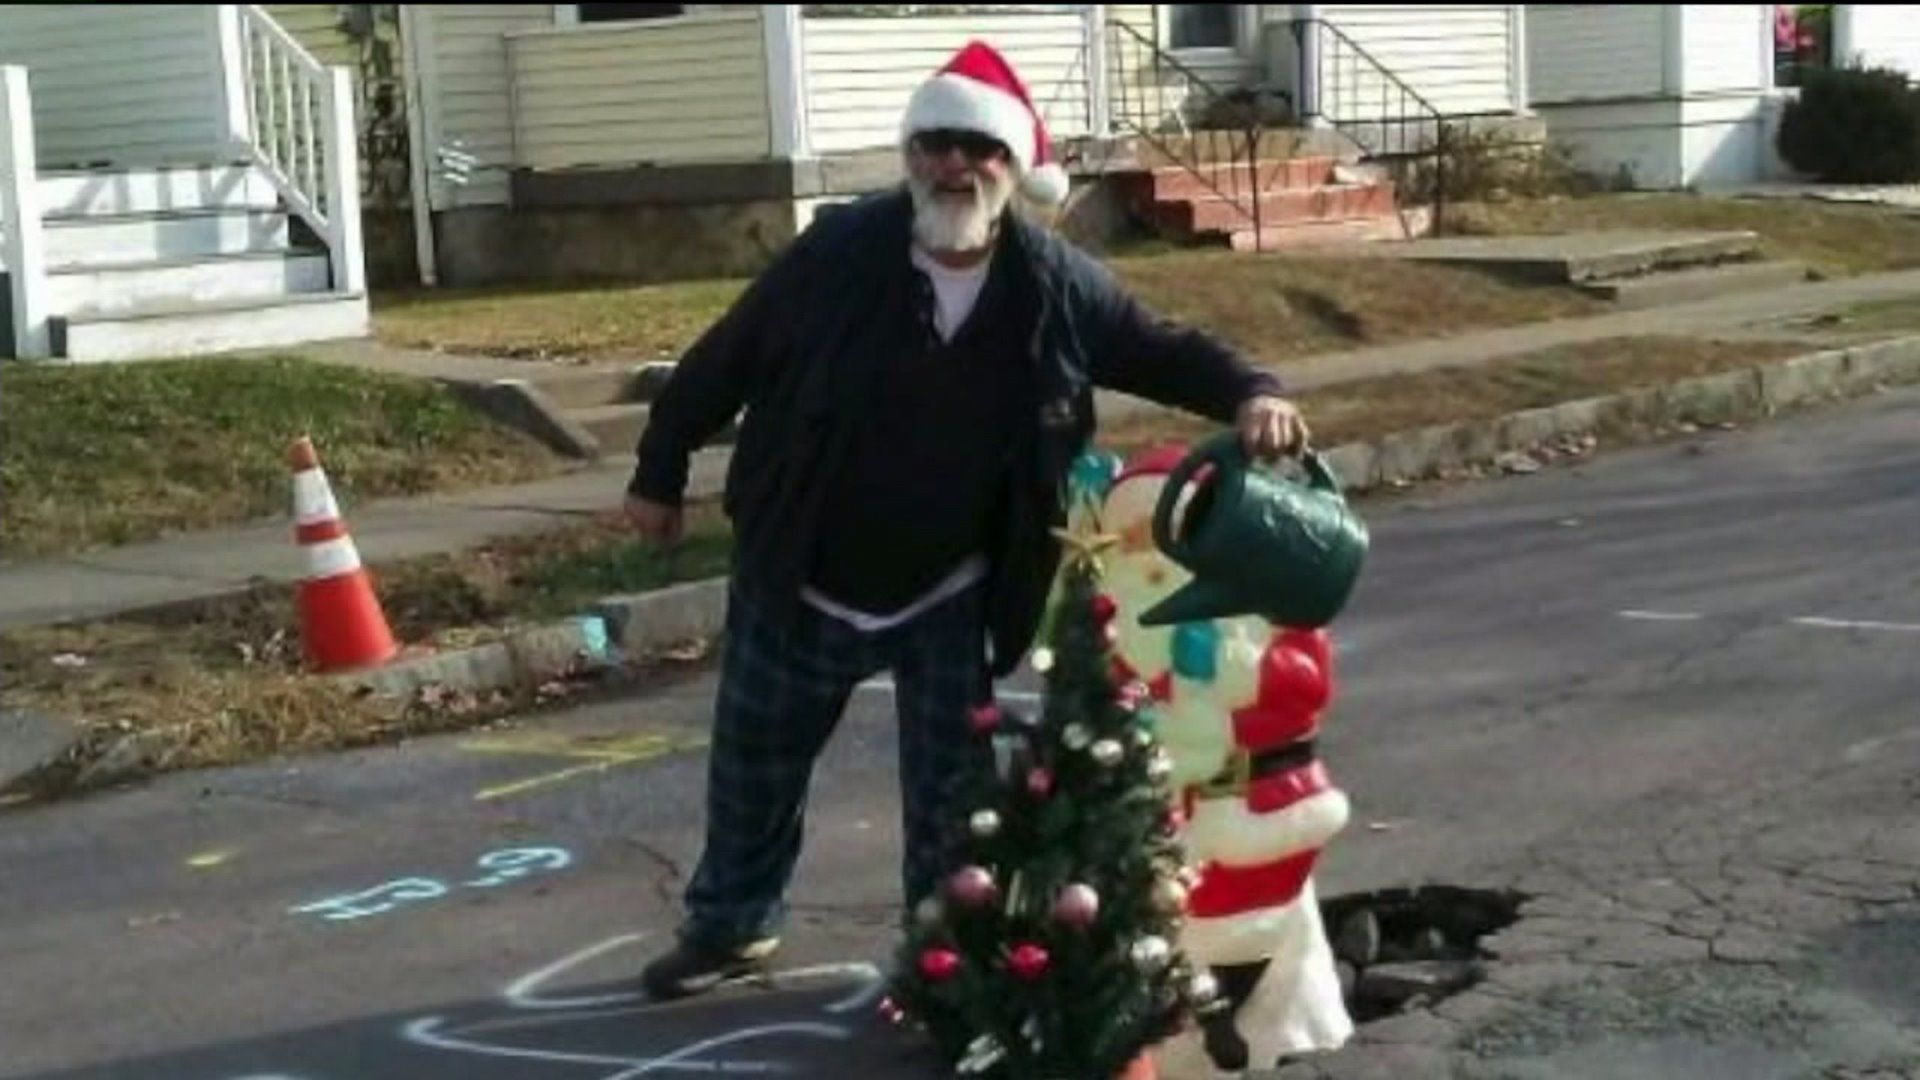 Weird News - Pennsylvania Neighborhood Fills Growing Pothole With Christmas Tree